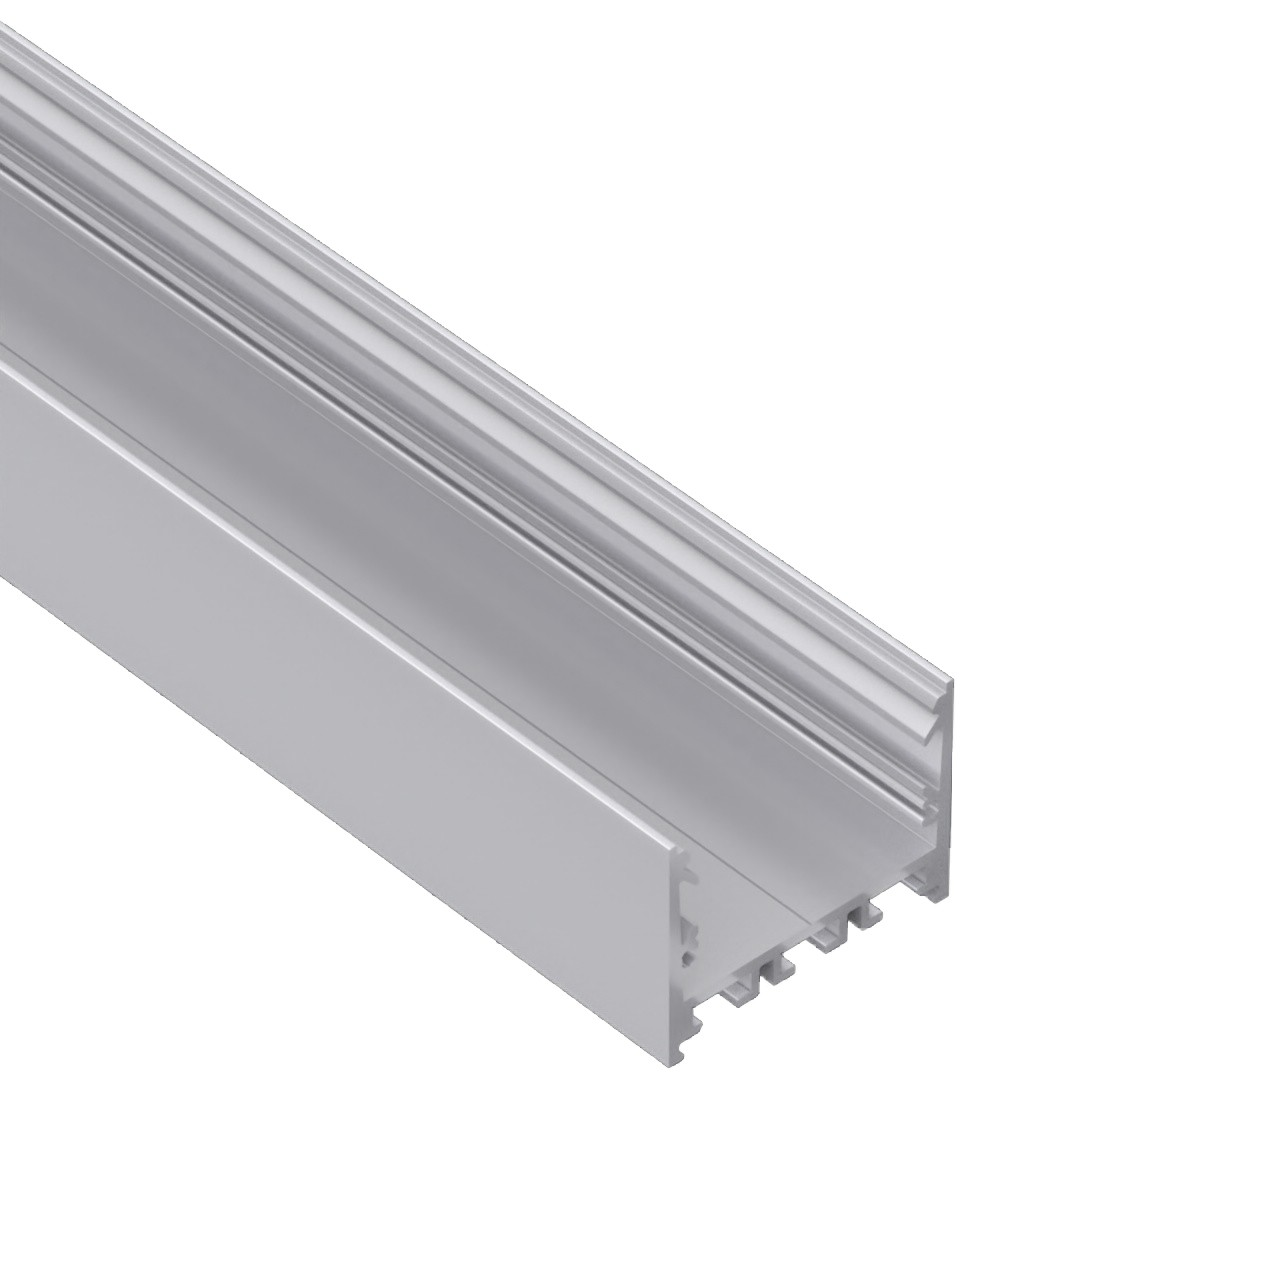 EU50 Led Aluminum Profile